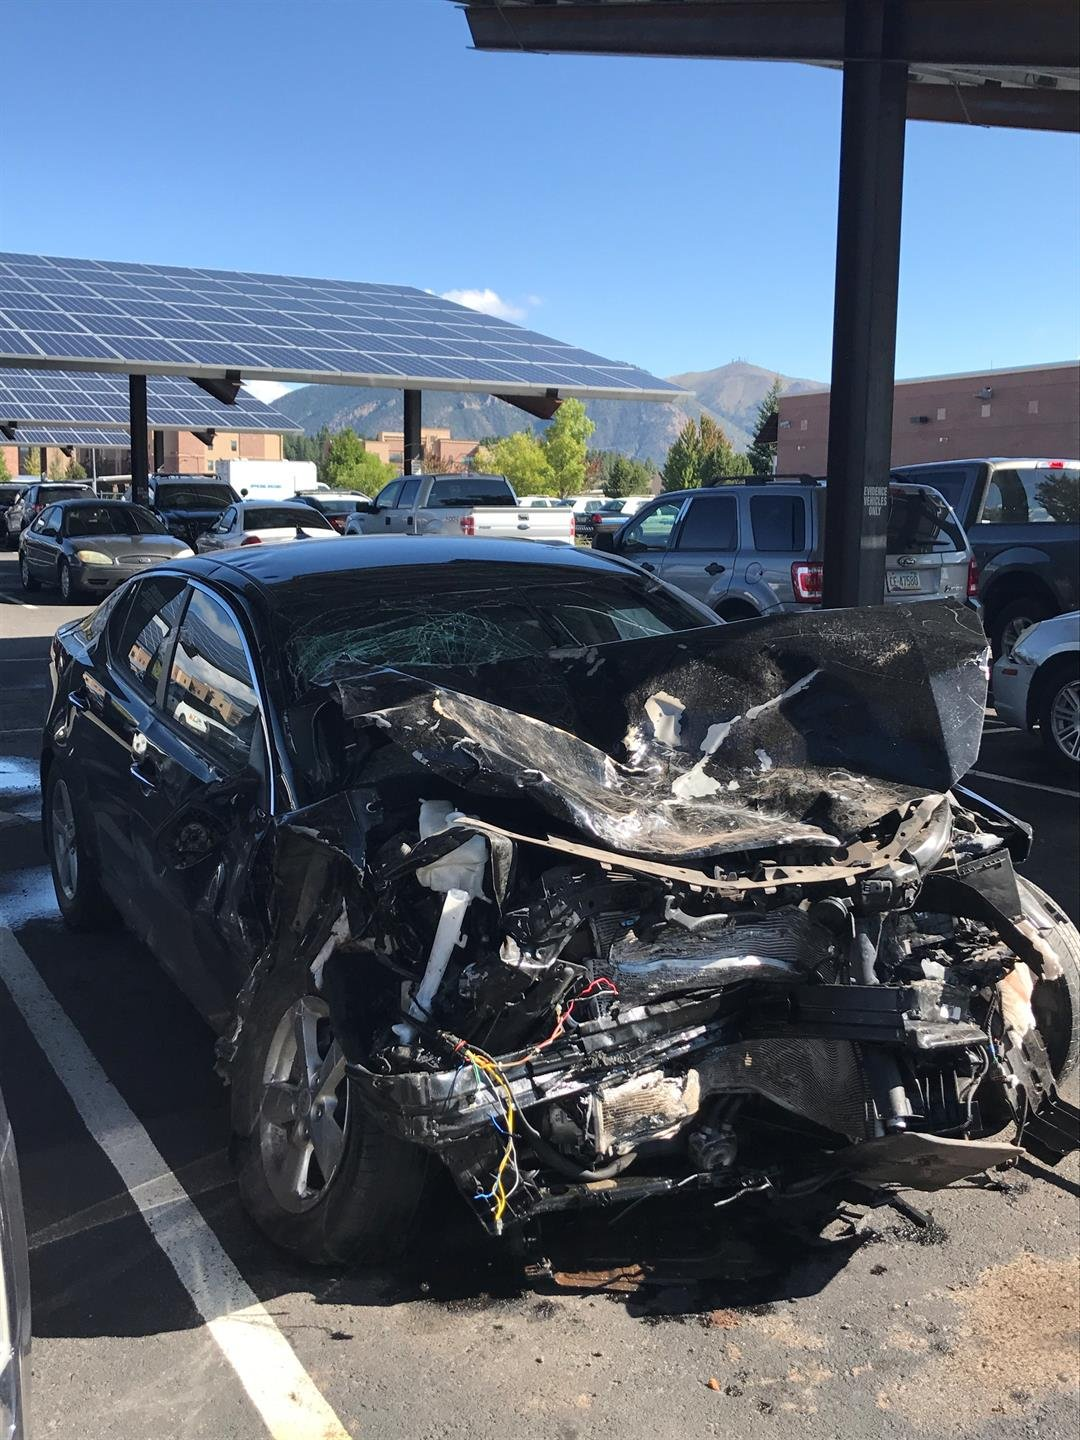 Police said Whiterock crashed into two other vehicles. (Source: Flagstaff Police Department)